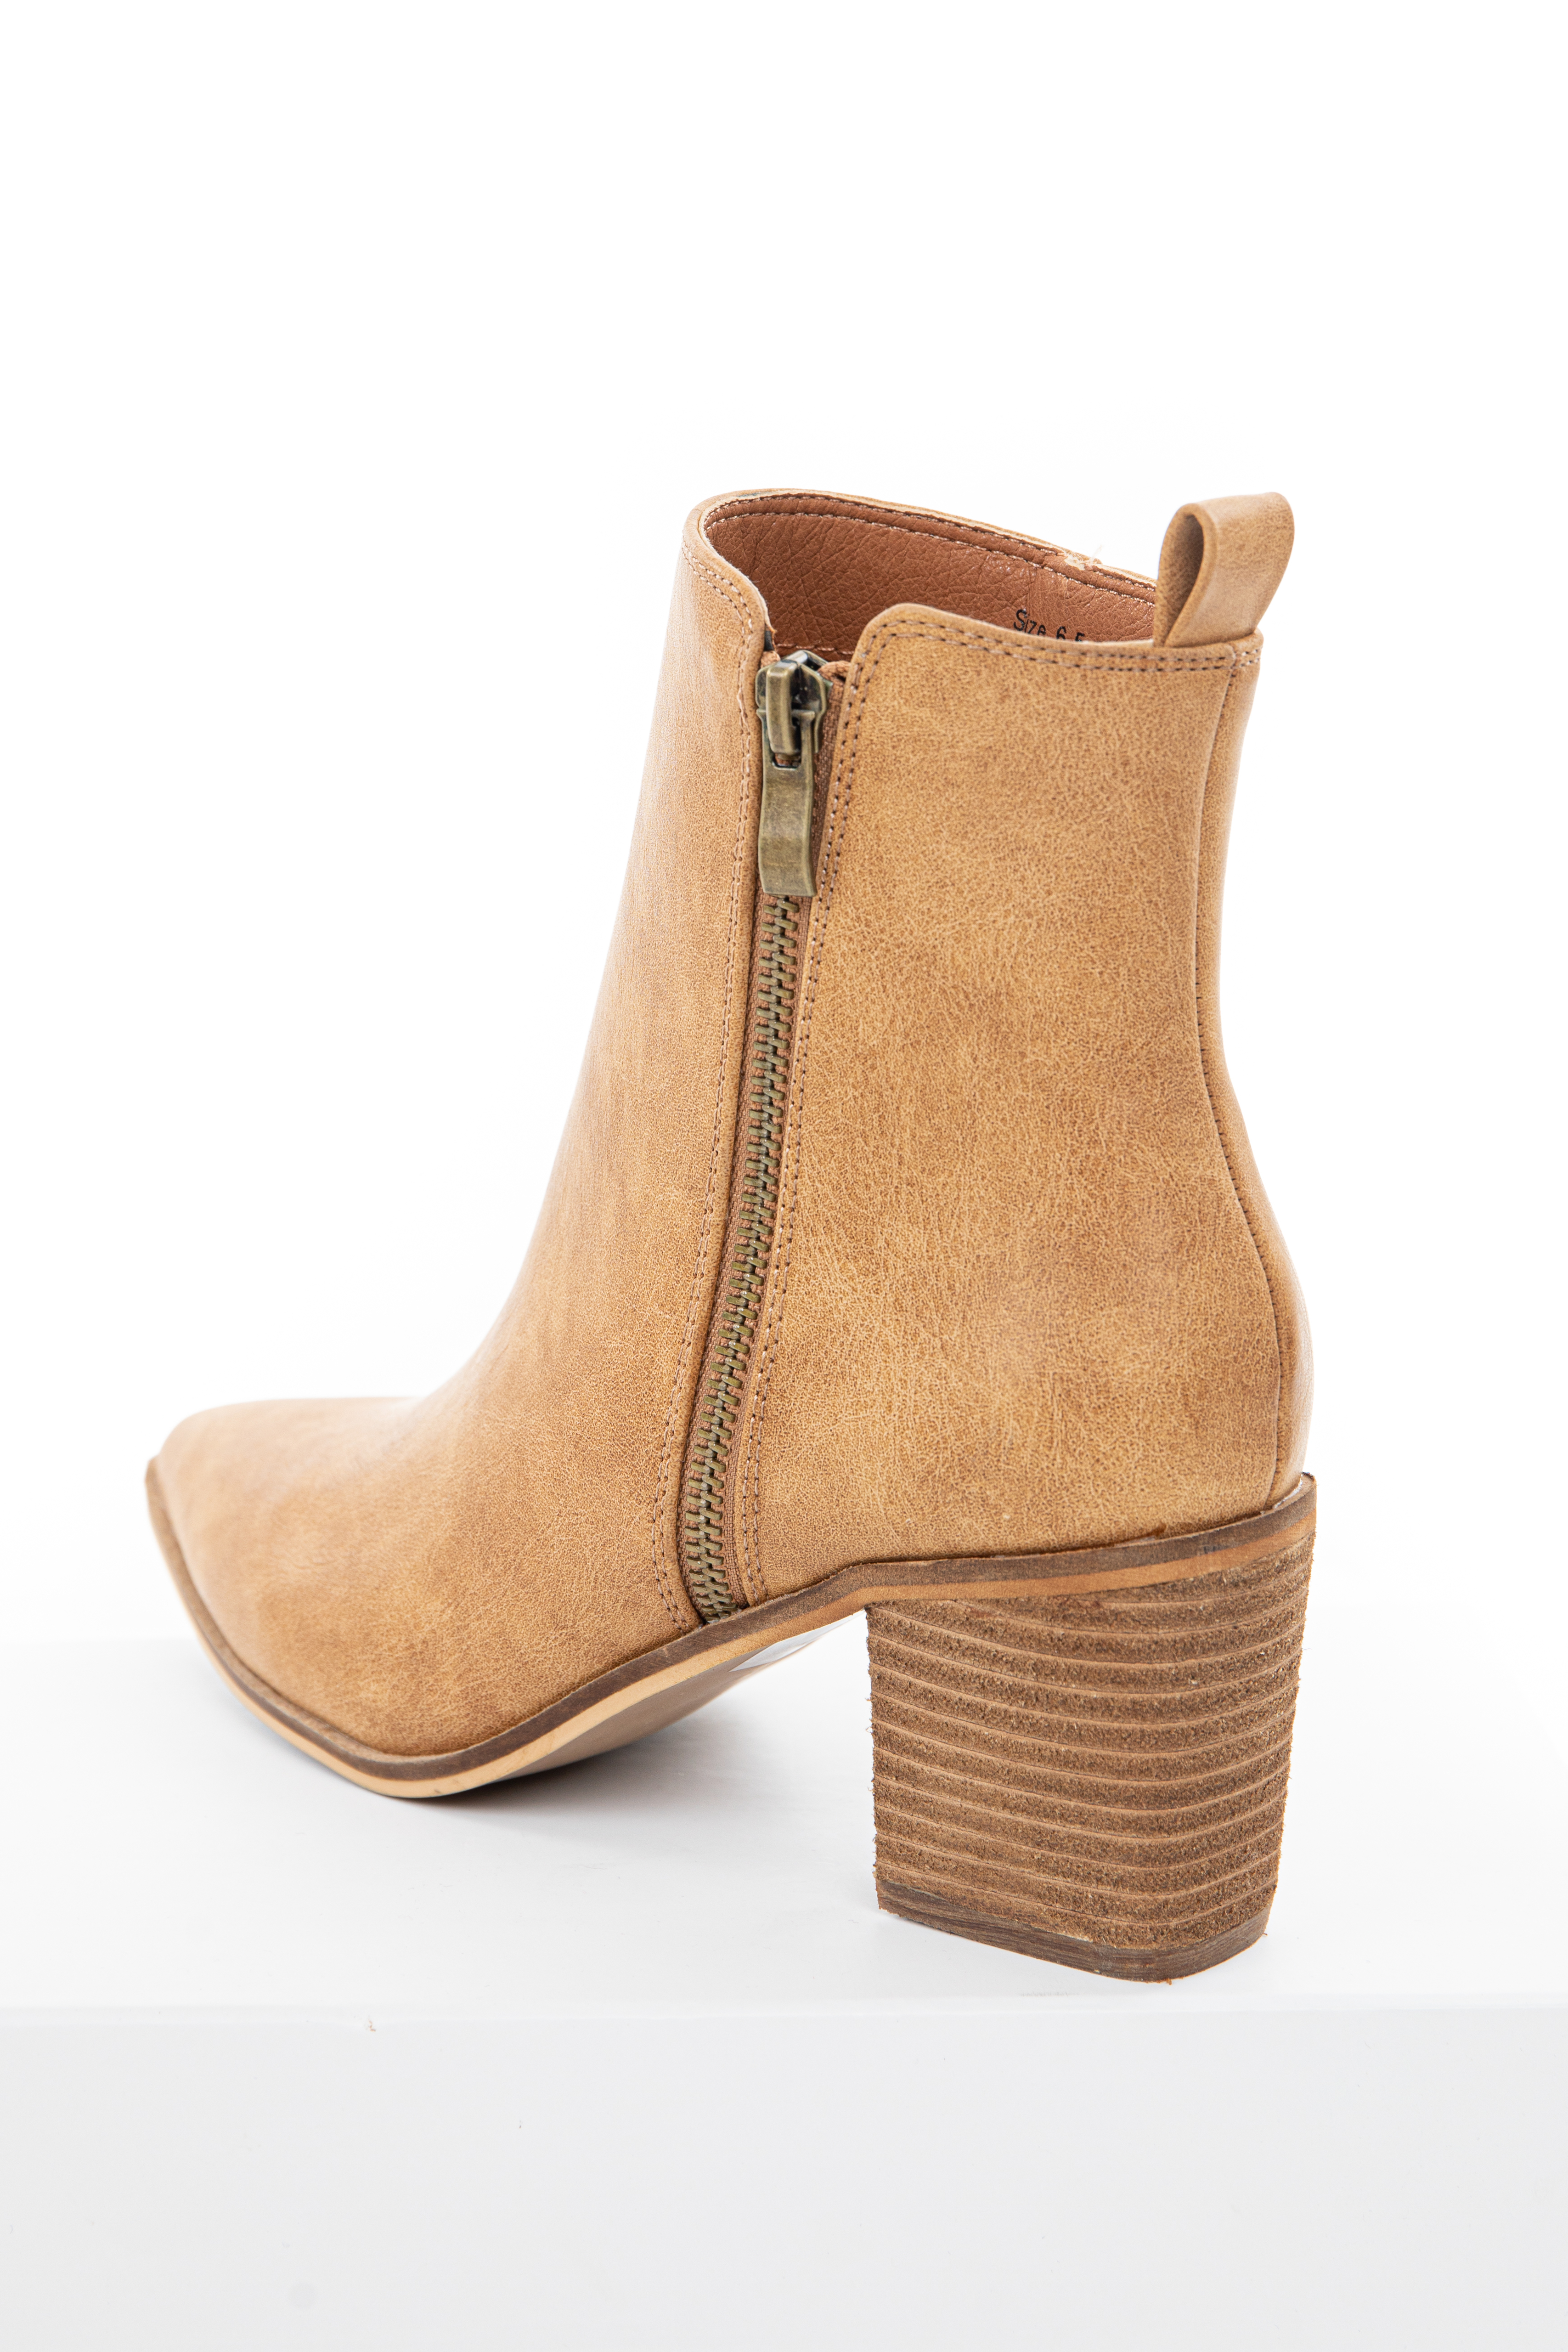 Camel High Top Booties with Block Heel and Pointed Toe